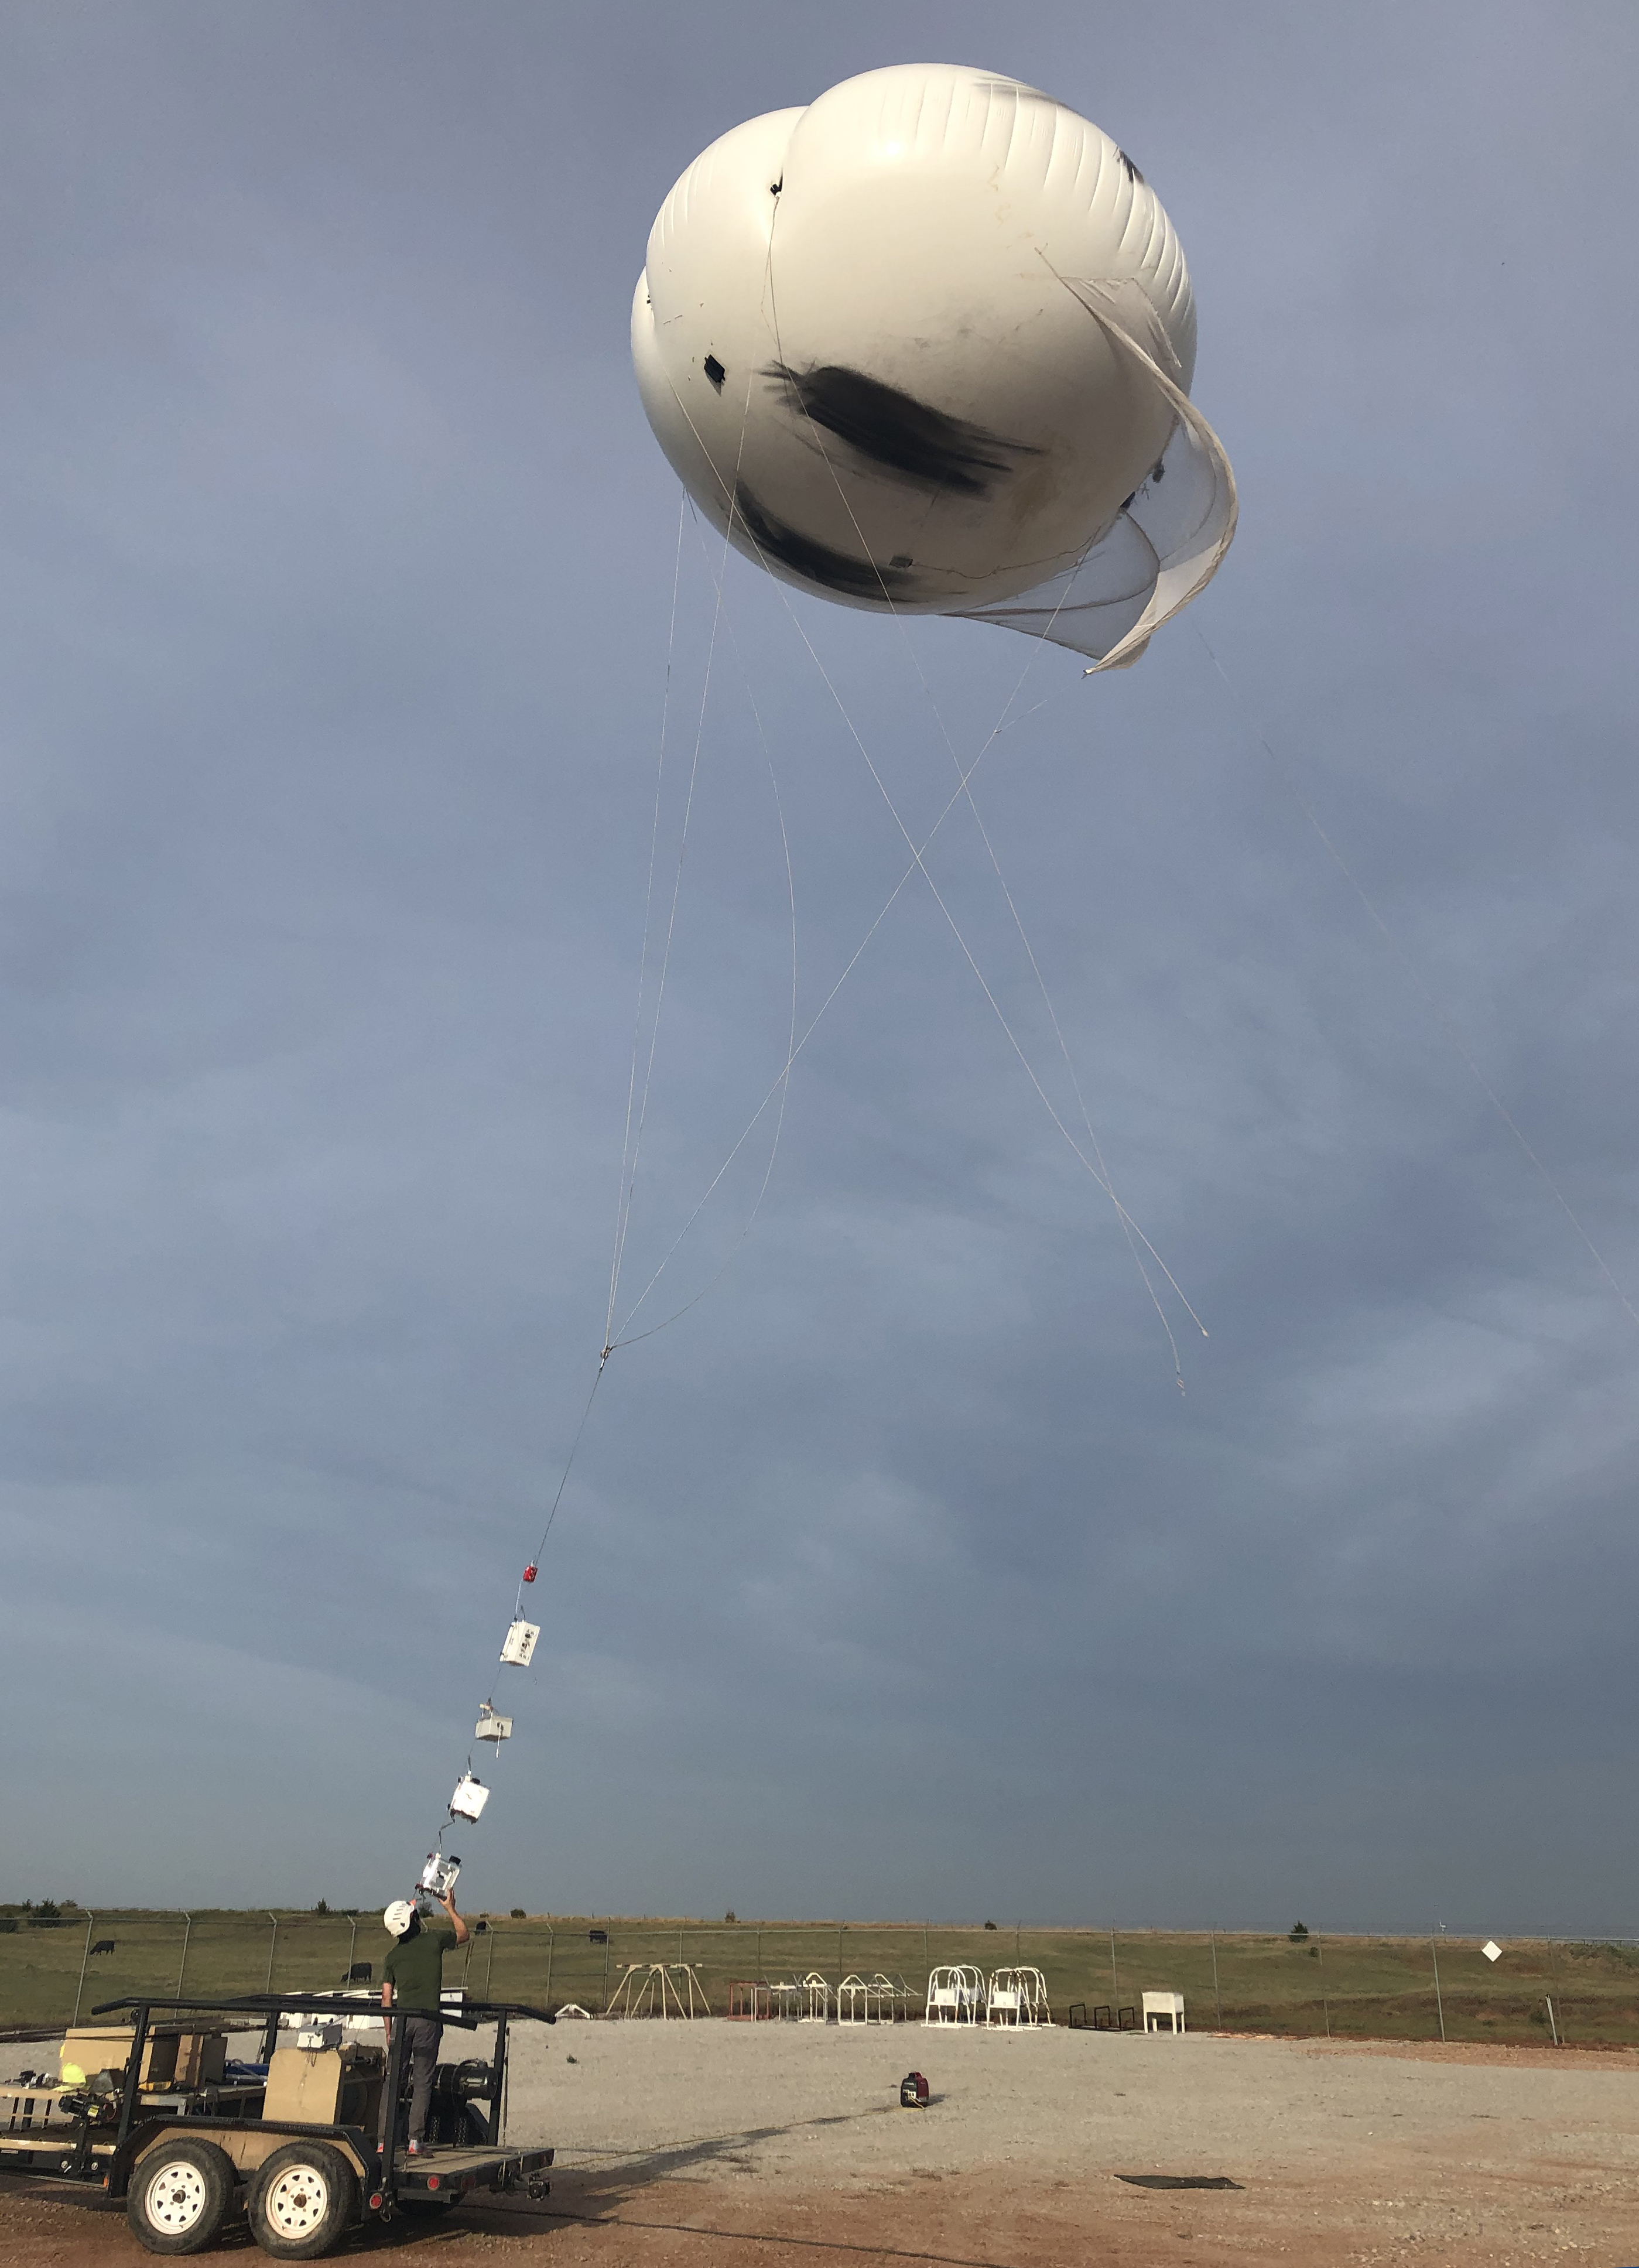 Tethered balloon system at Southern Great Plains observatory